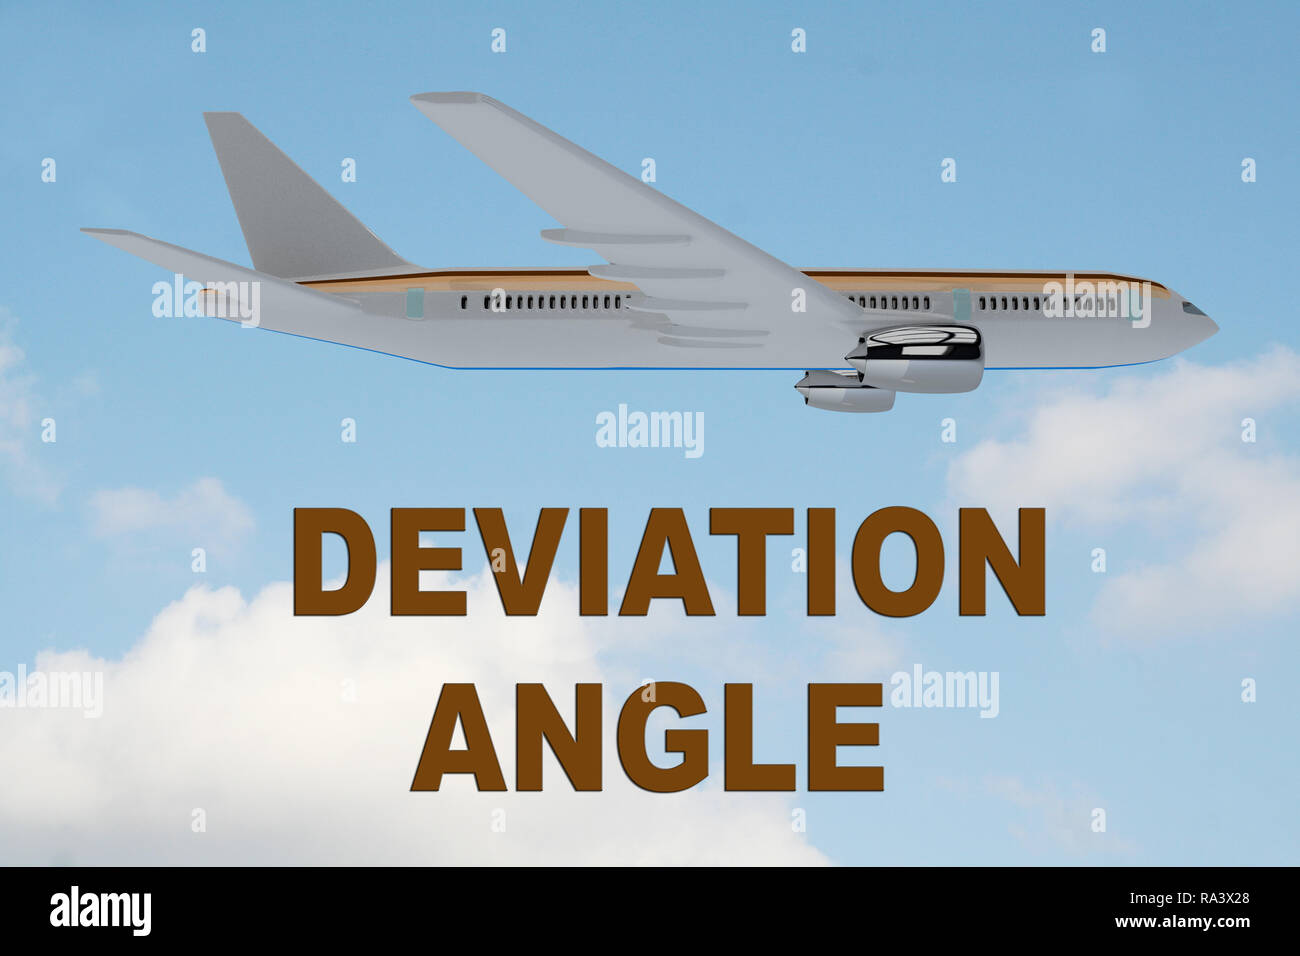 3D illustration of DEVIATION ANGLE title on cloudy sky as a background, under an airplane. - Stock Image